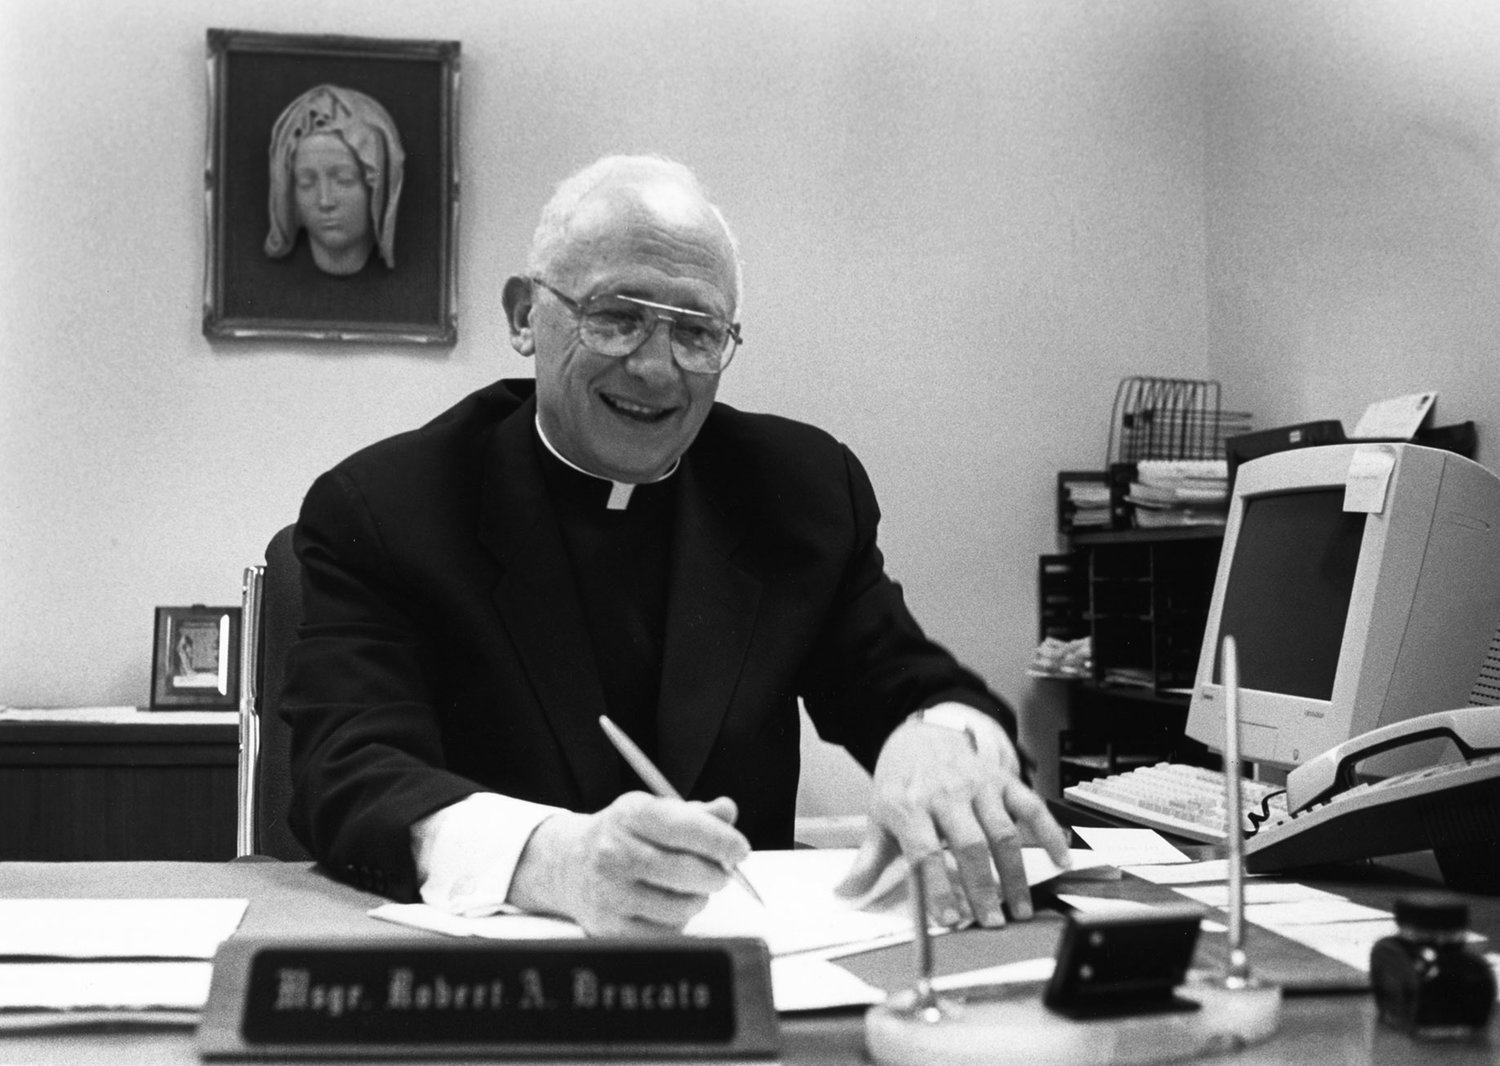 Bishop-designate Brucato at his desk shortly after his appointment as an auxiliary bishop was announced in July 1997.